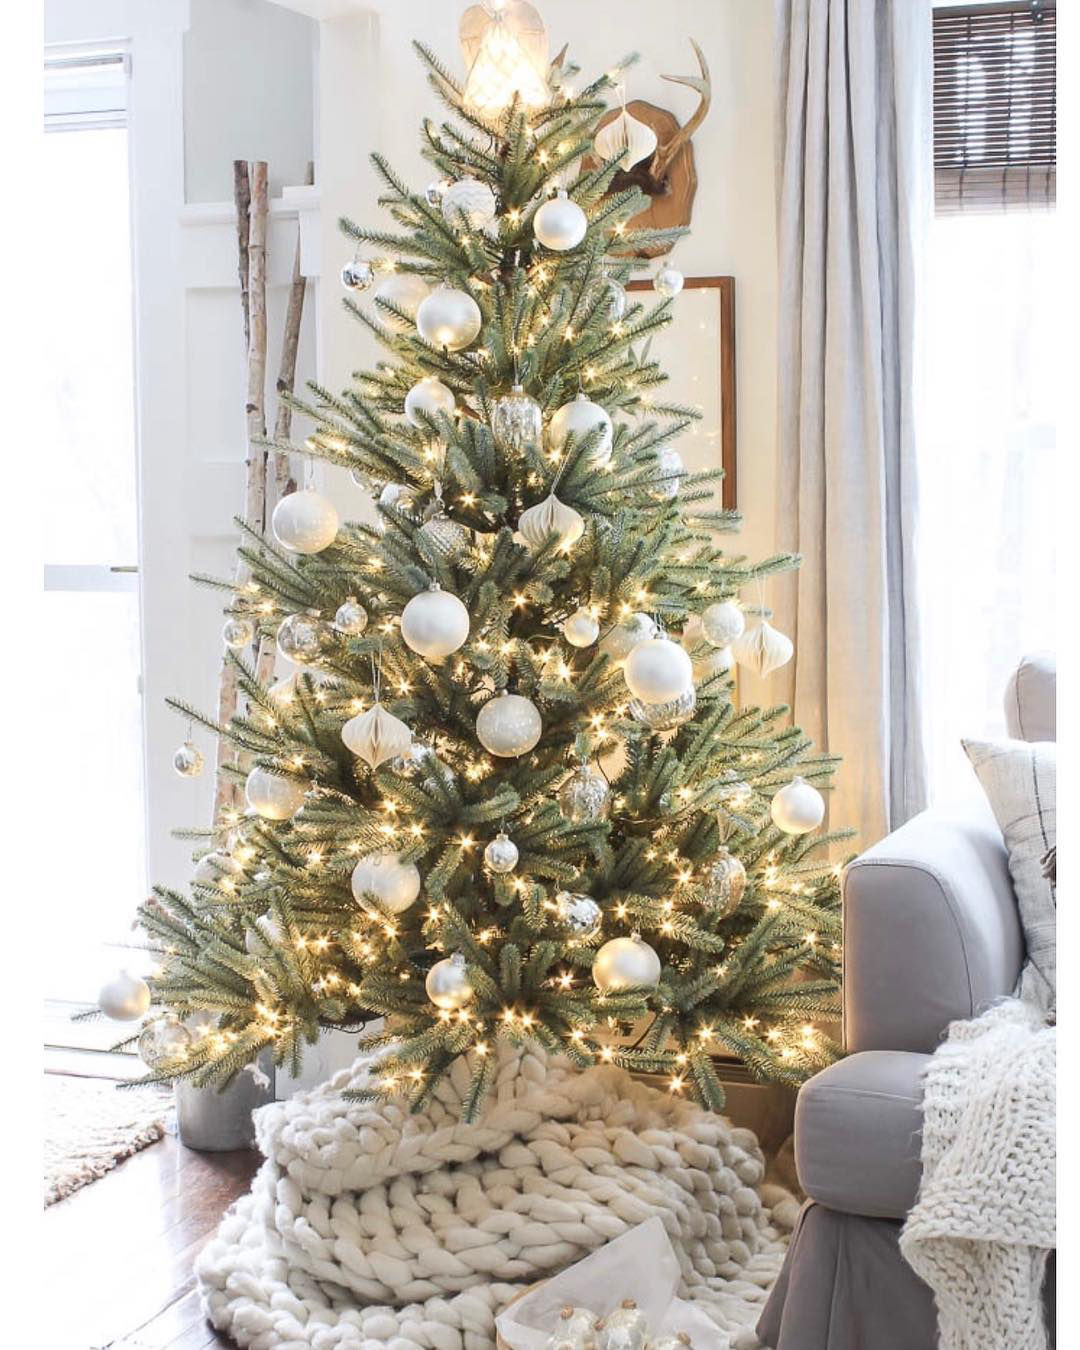 Simple & Elegant Christmas Tree | Rooms for Rent Blog